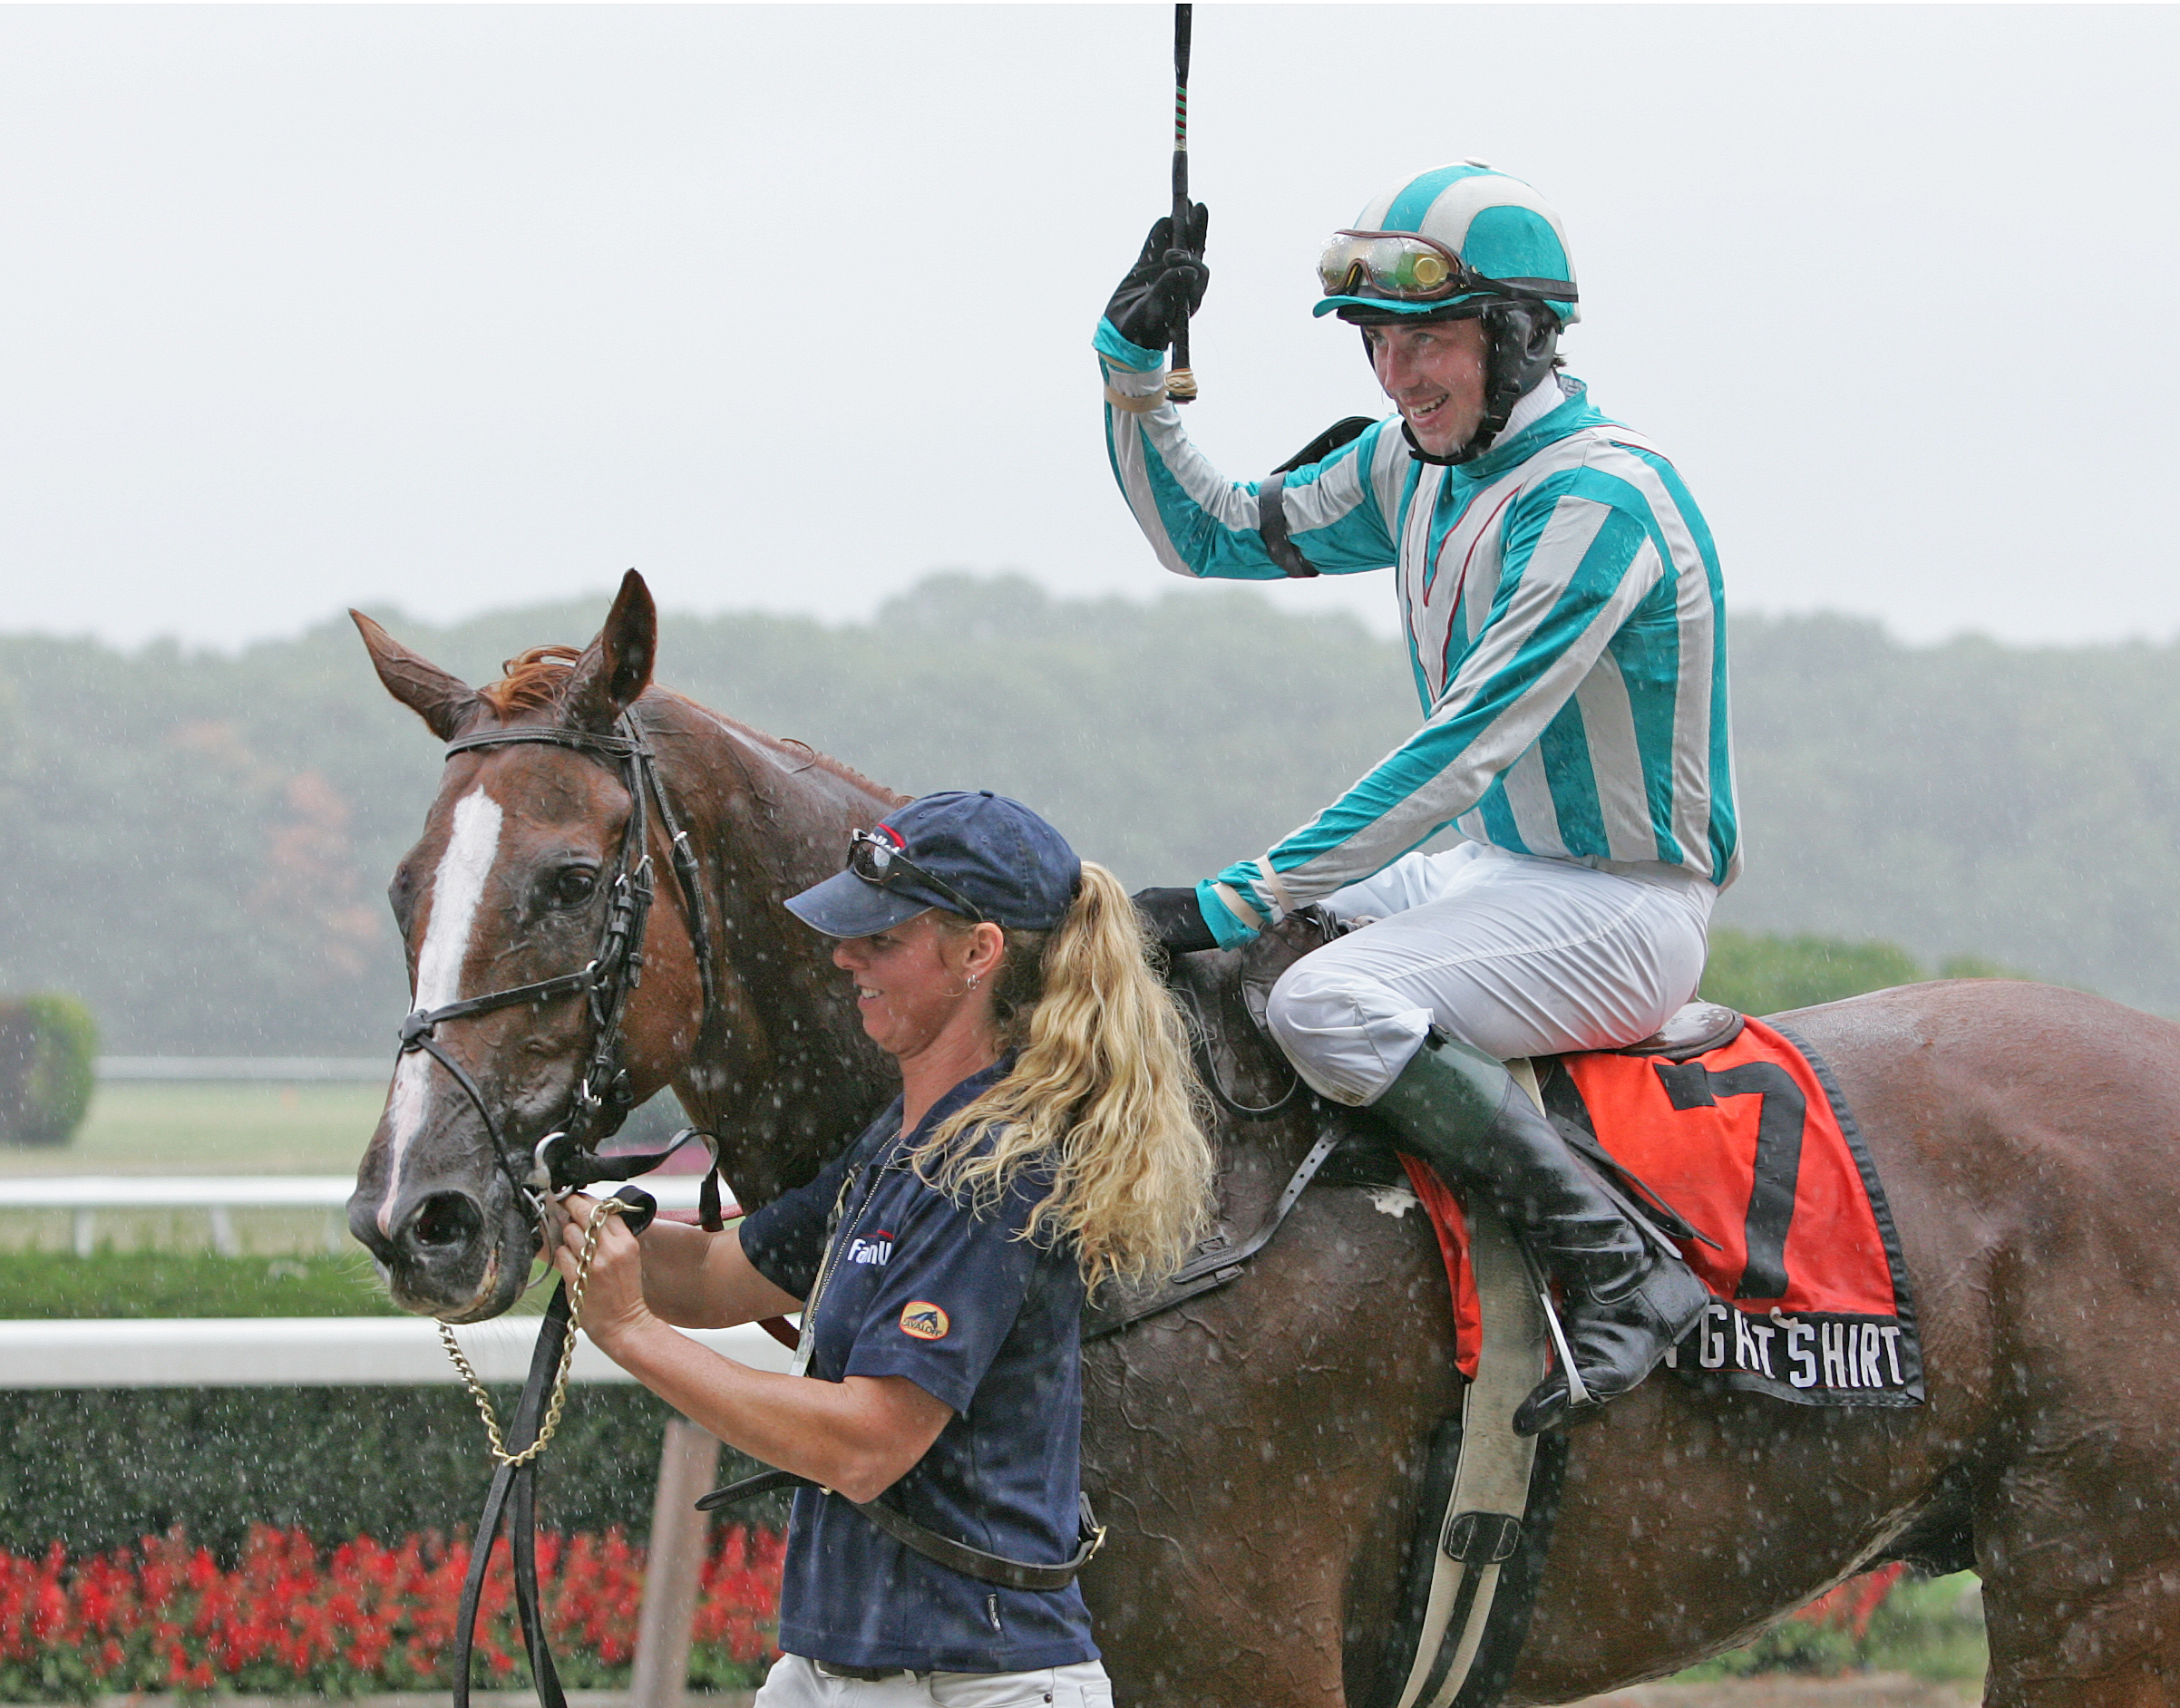 Good Night Shirt and Willy Dowling after winning the 2007 Lonesome Glory (Tod Marks)